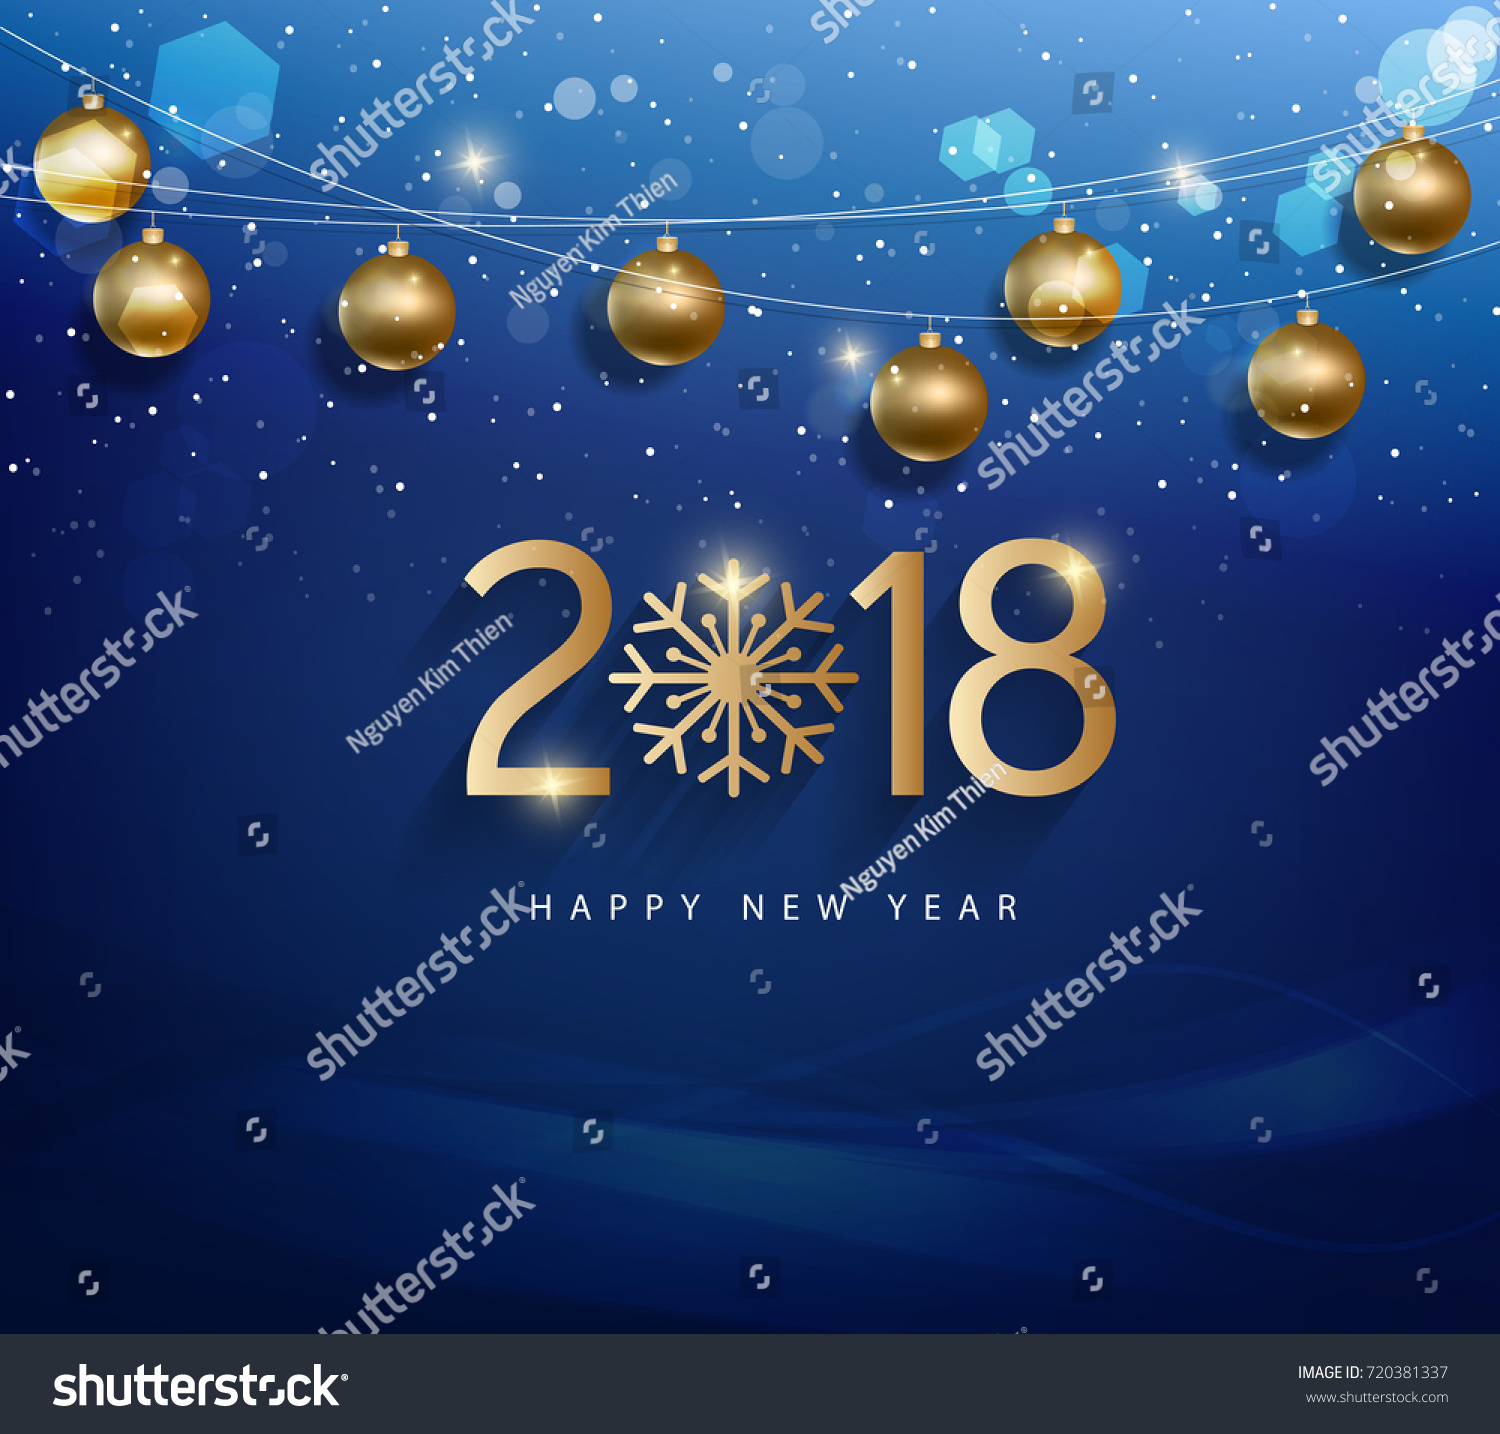 Happy new year 2018 greeting card stock vector royalty free happy new year 2018 greeting card with golden background m4hsunfo